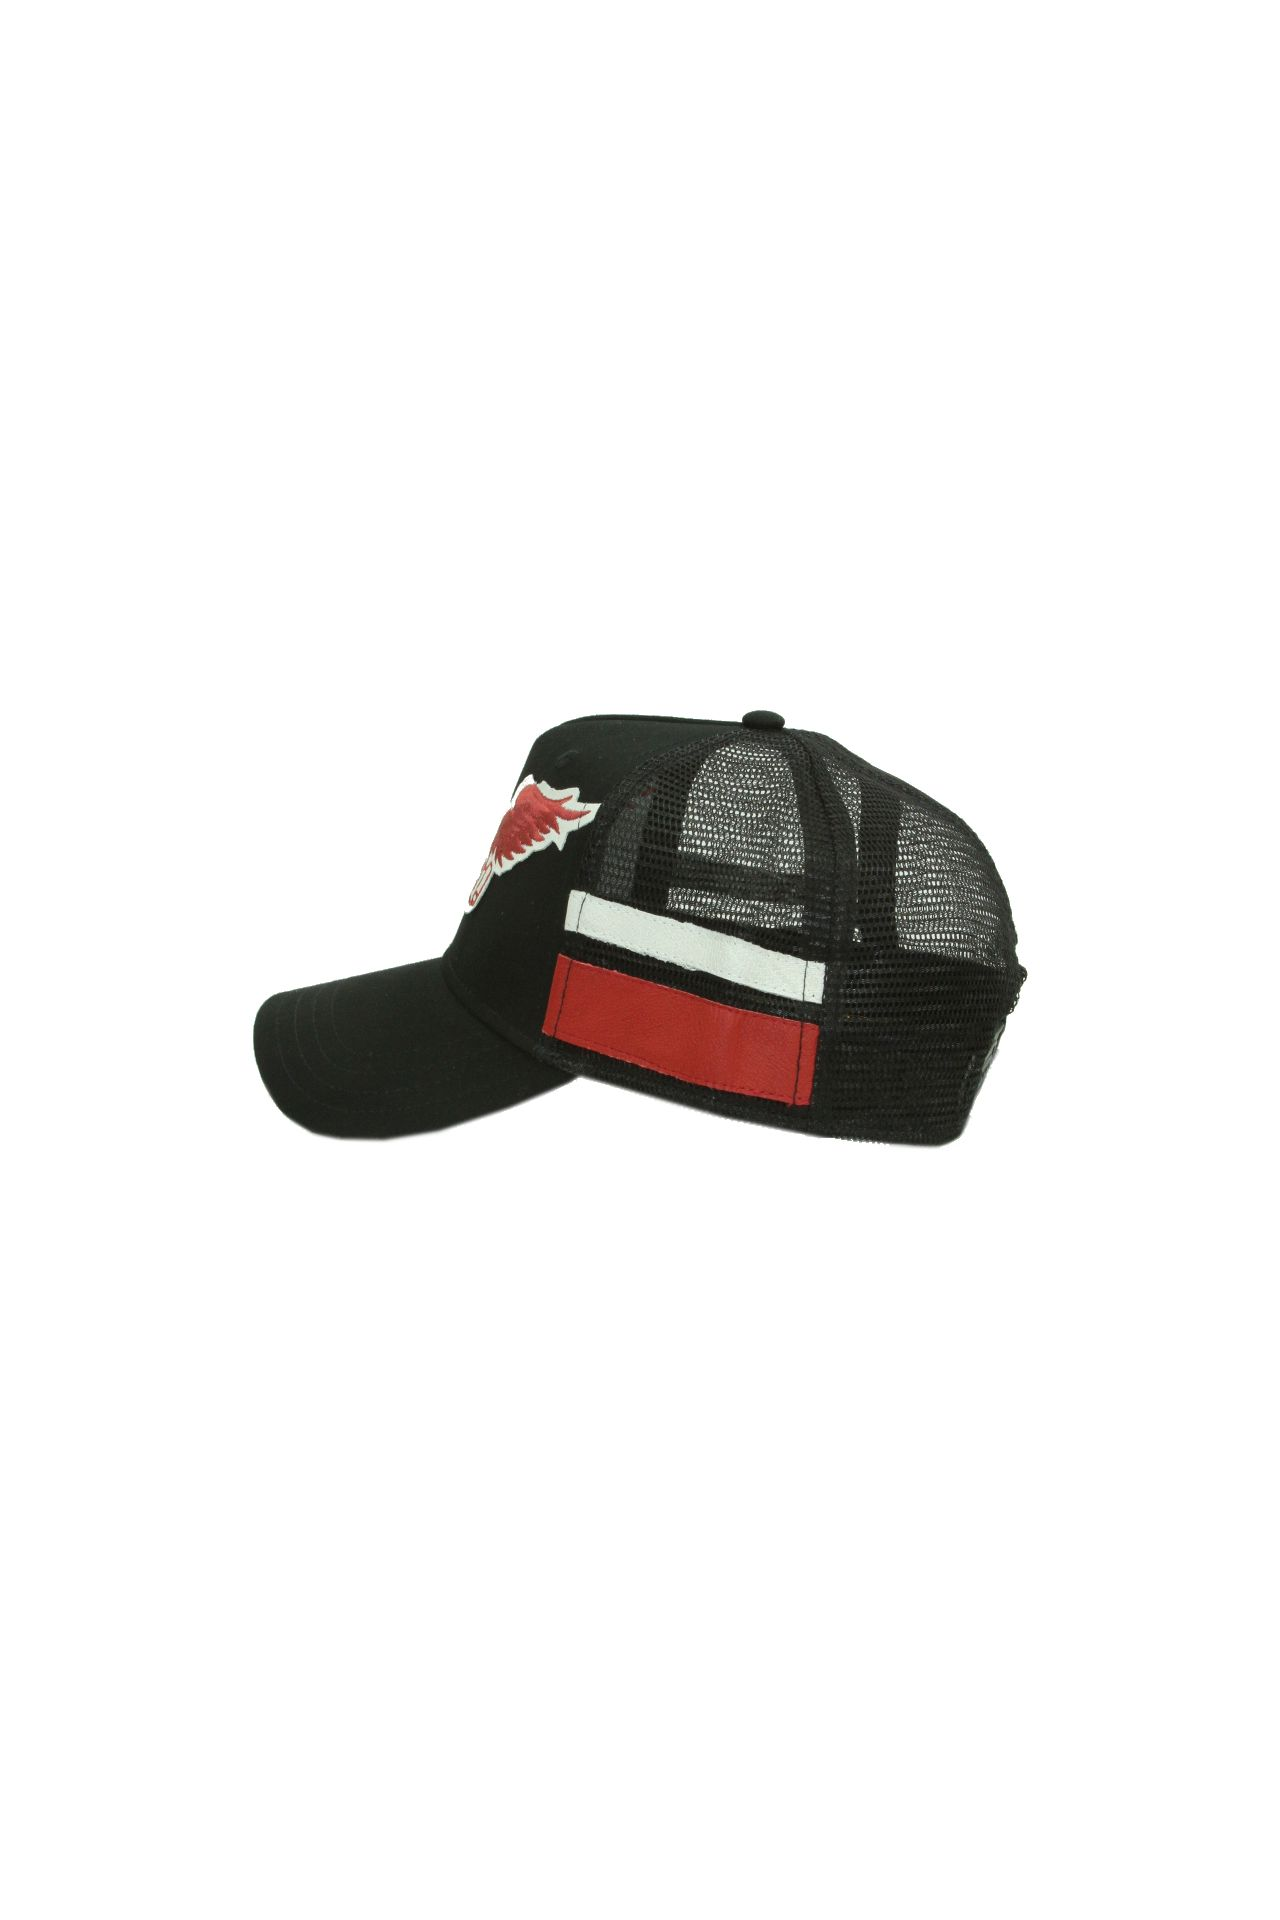 TWILL CAP BLACK WITH RED WINGS